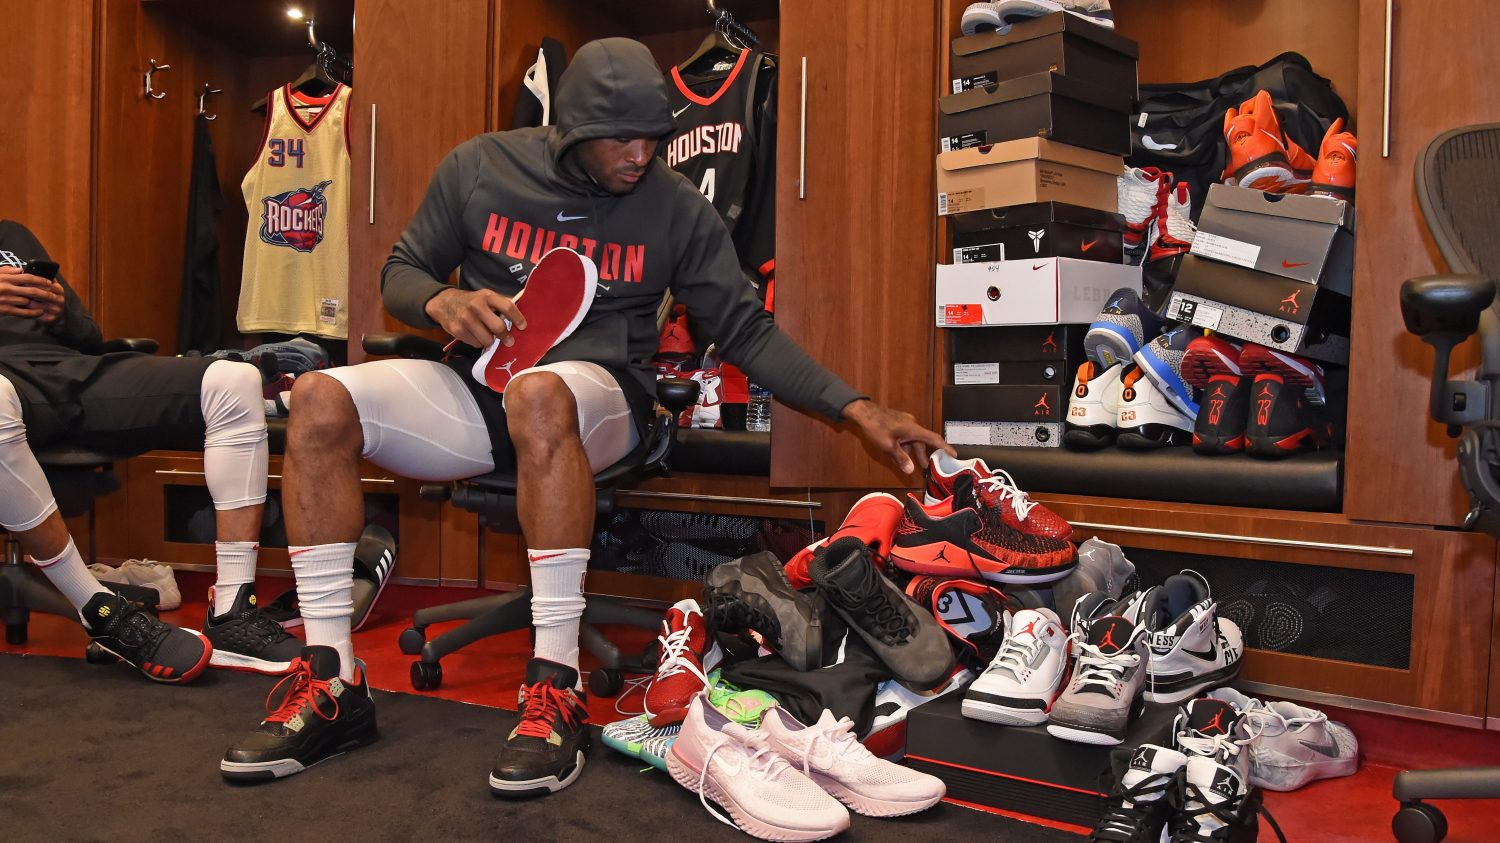 The complete — and insane — list of P.J. Tucker s 2018 NBA playoff sneakers 0519d7210